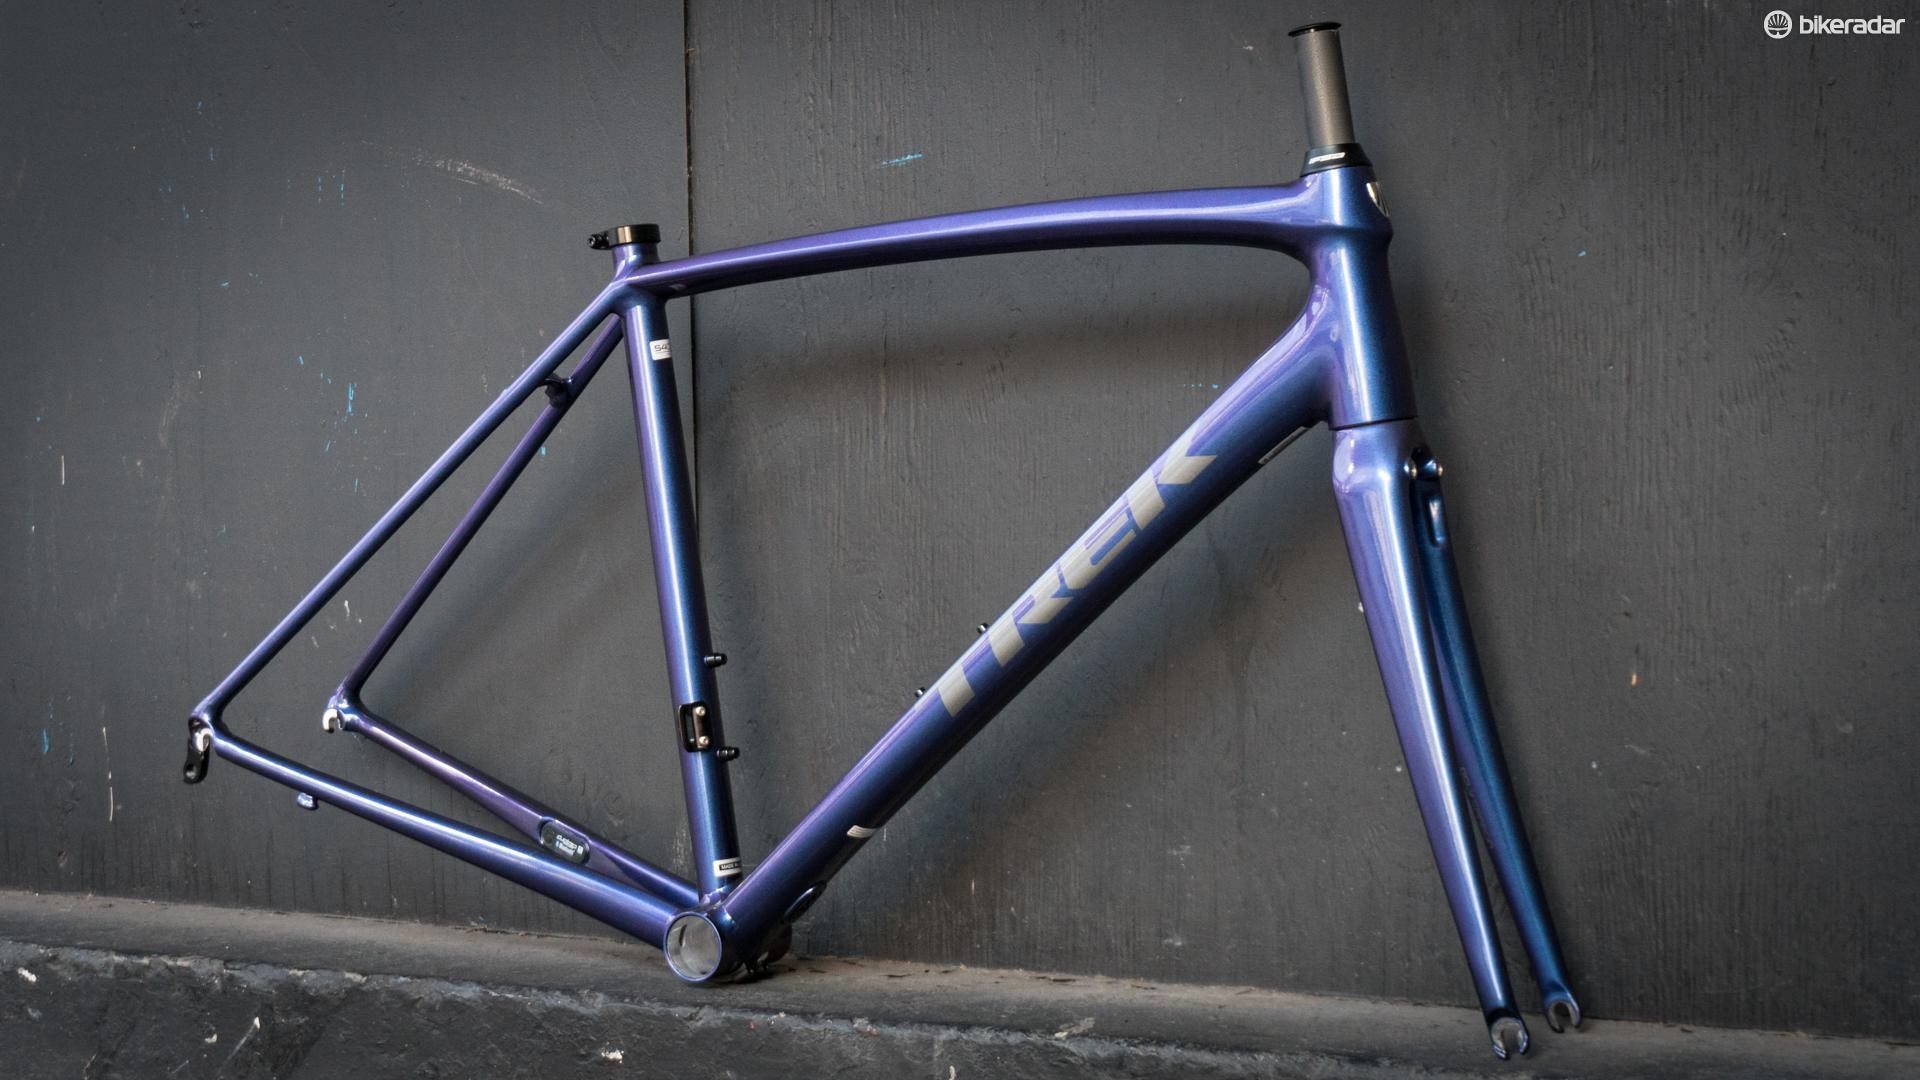 With low-key rim brakes and SRAM eTap, this will be a clean build